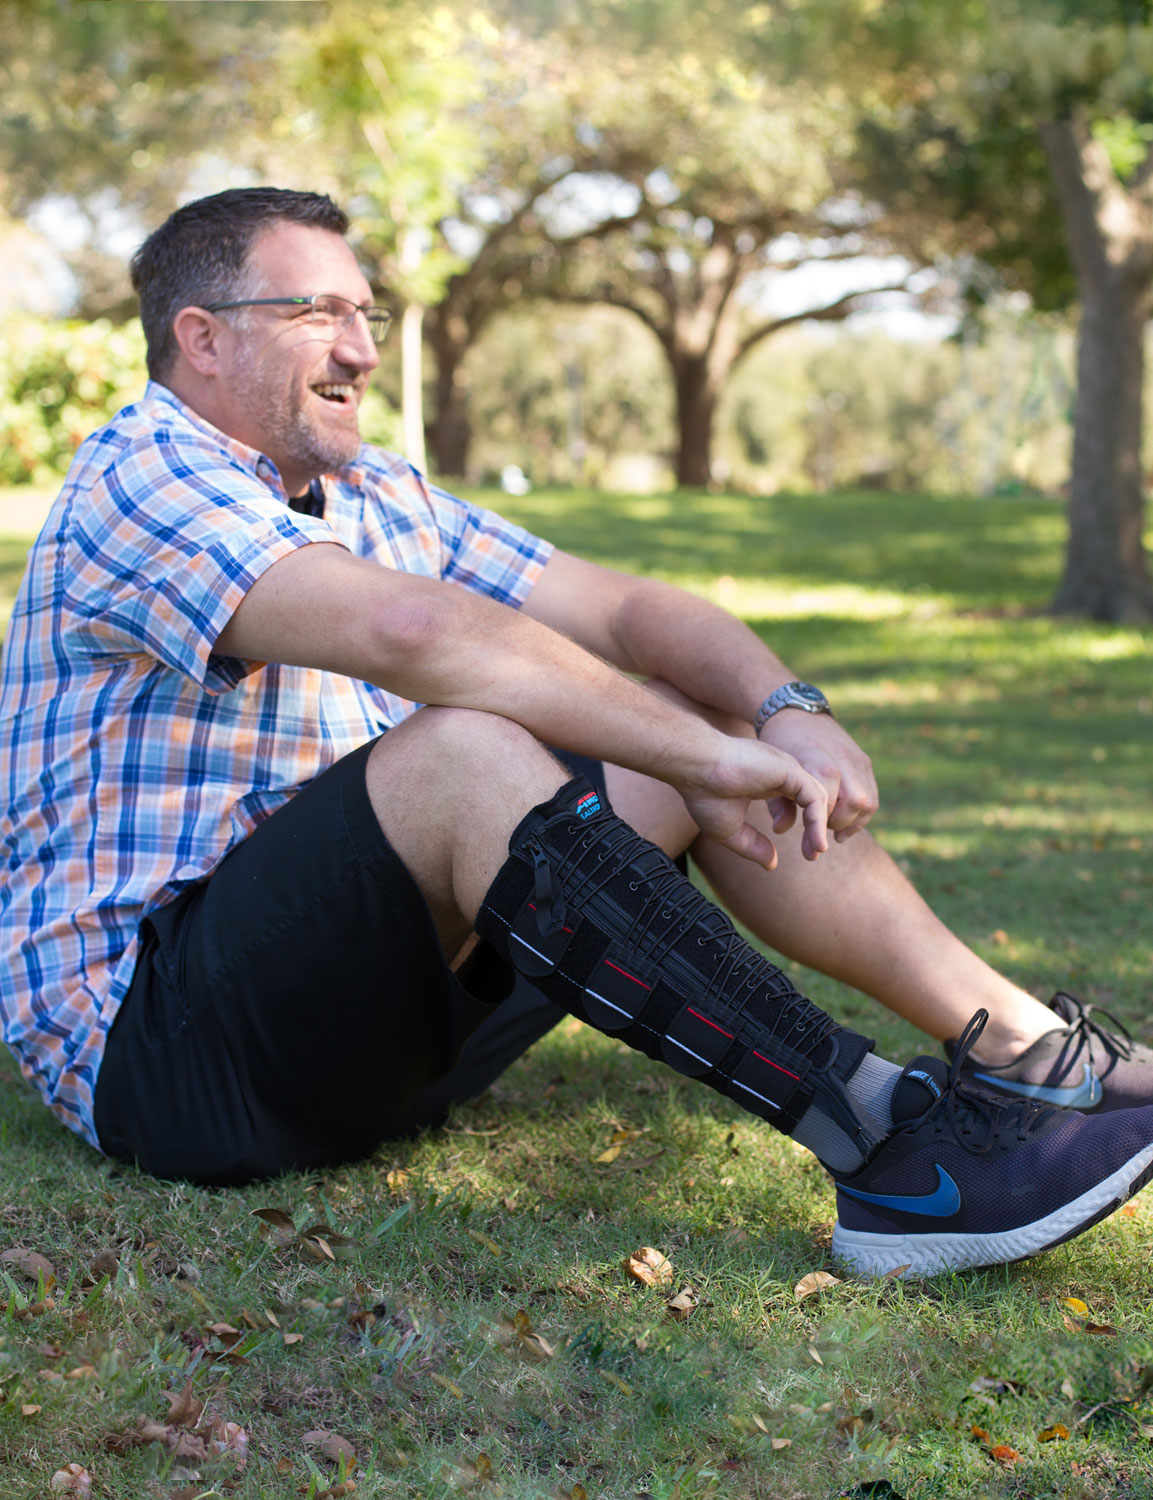 EXTREMIT-EASE Compression Garment on man in a park